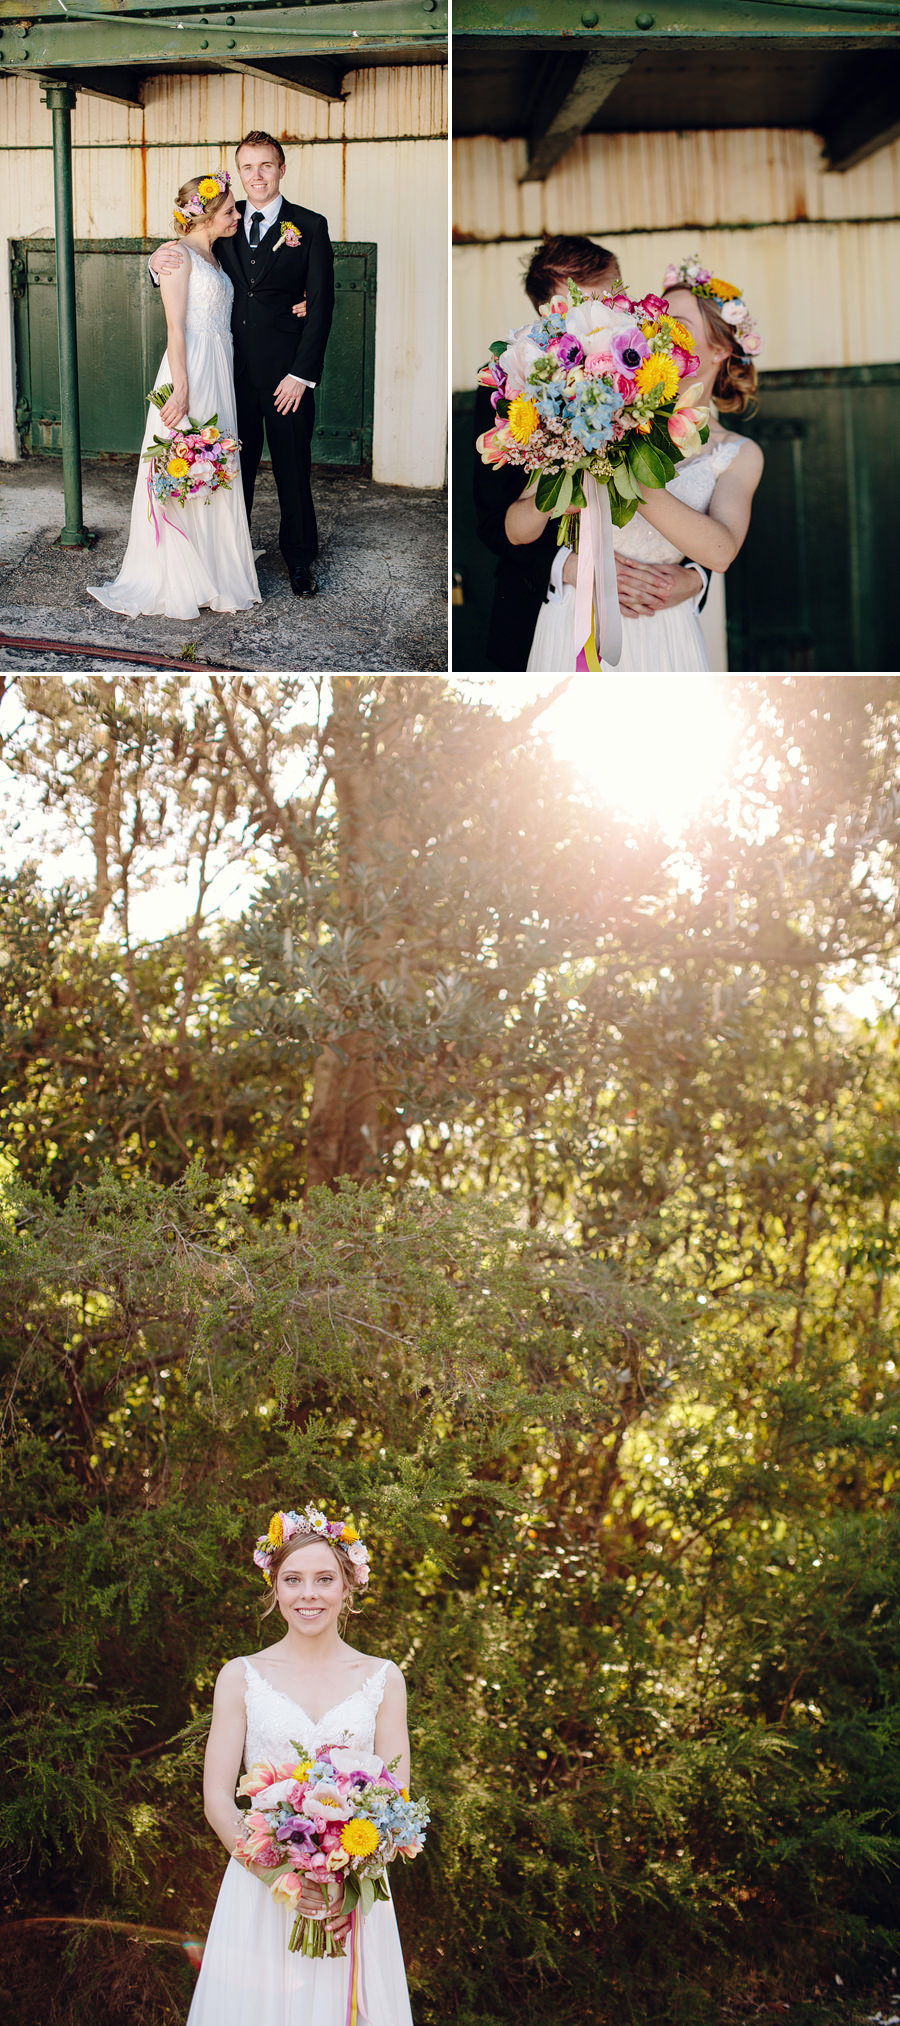 North Head Wedding Photography: Bridal Party Portraits